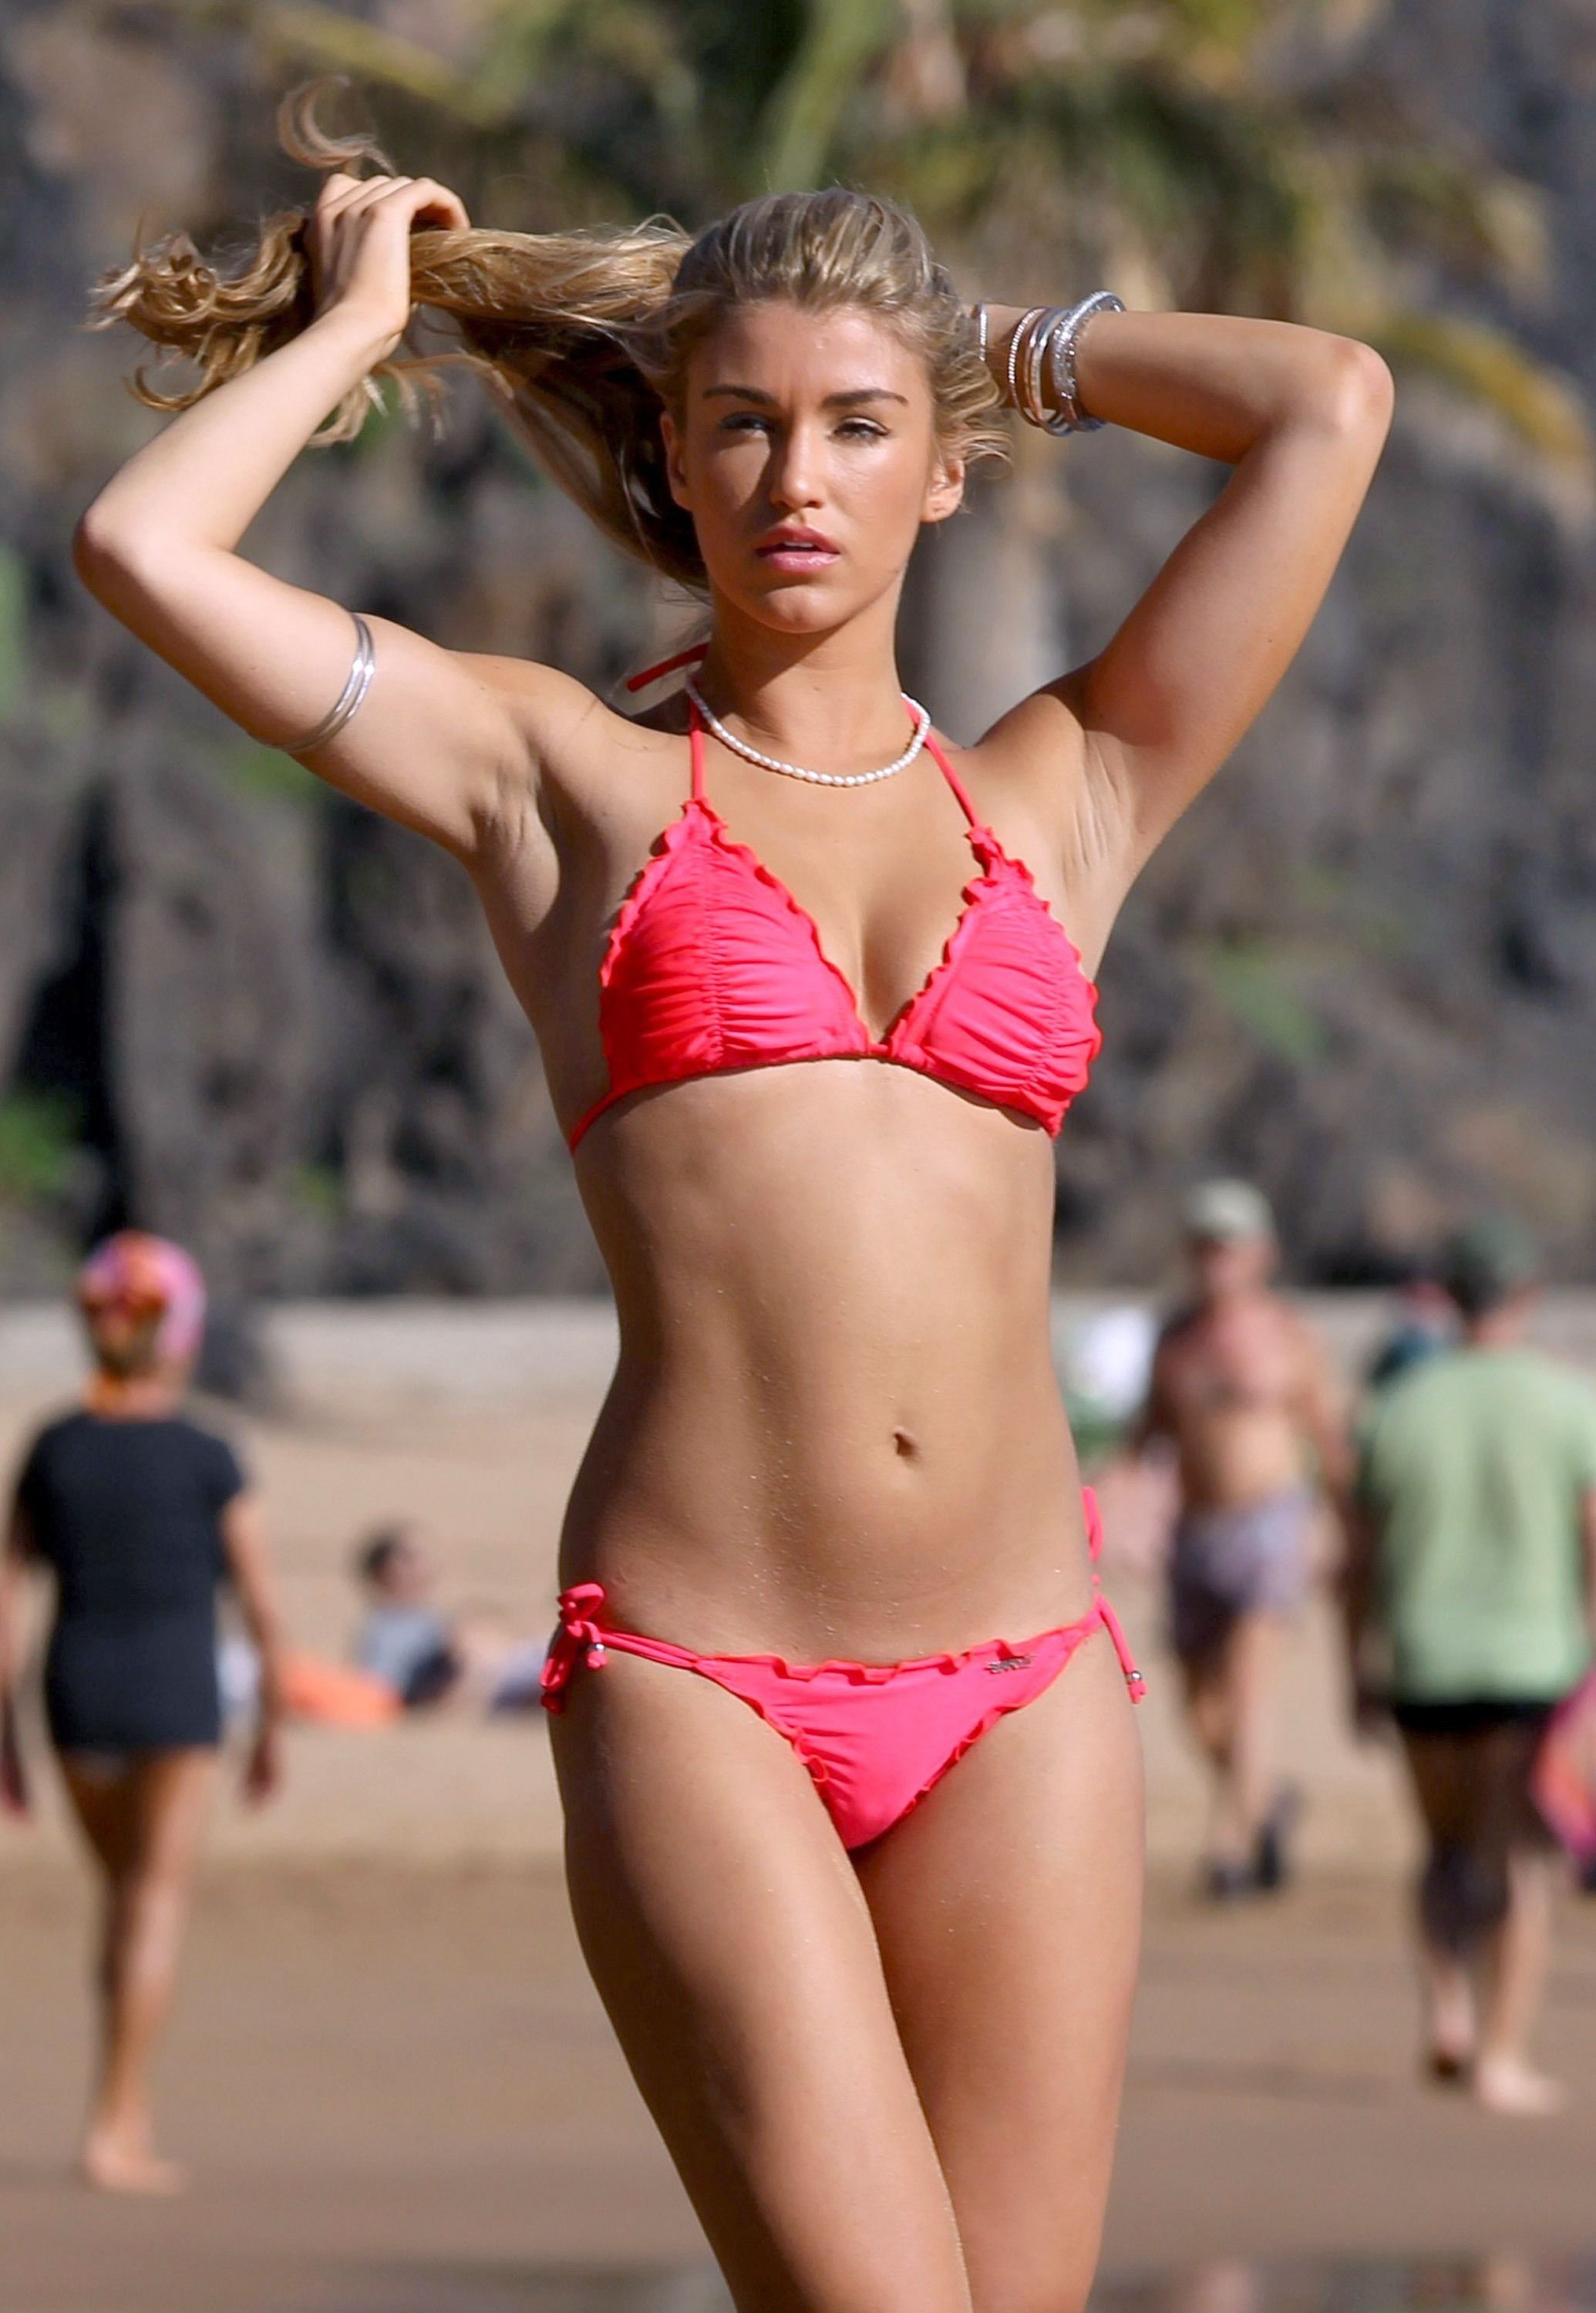 Amy Willerton Tits how to get ready for the summer season - newsbreakouts